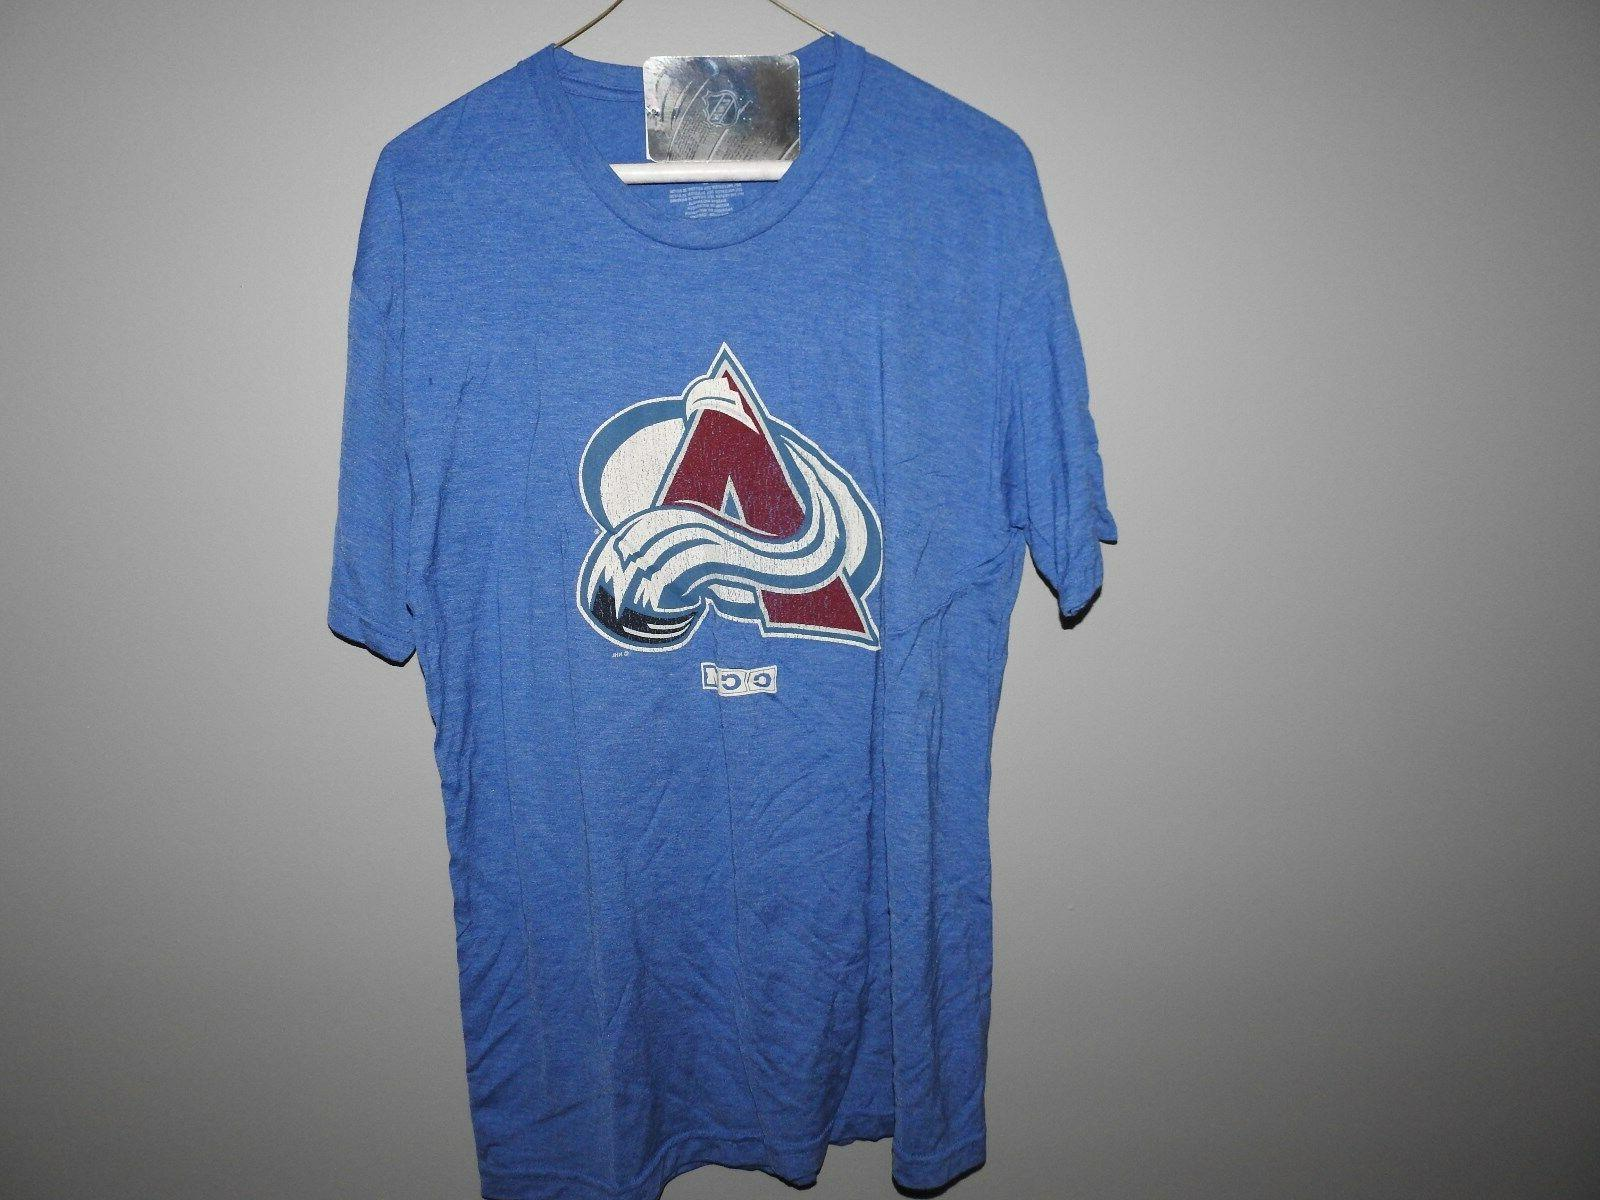 nhl vintage colorado avalanche 29 mackinnon hockey